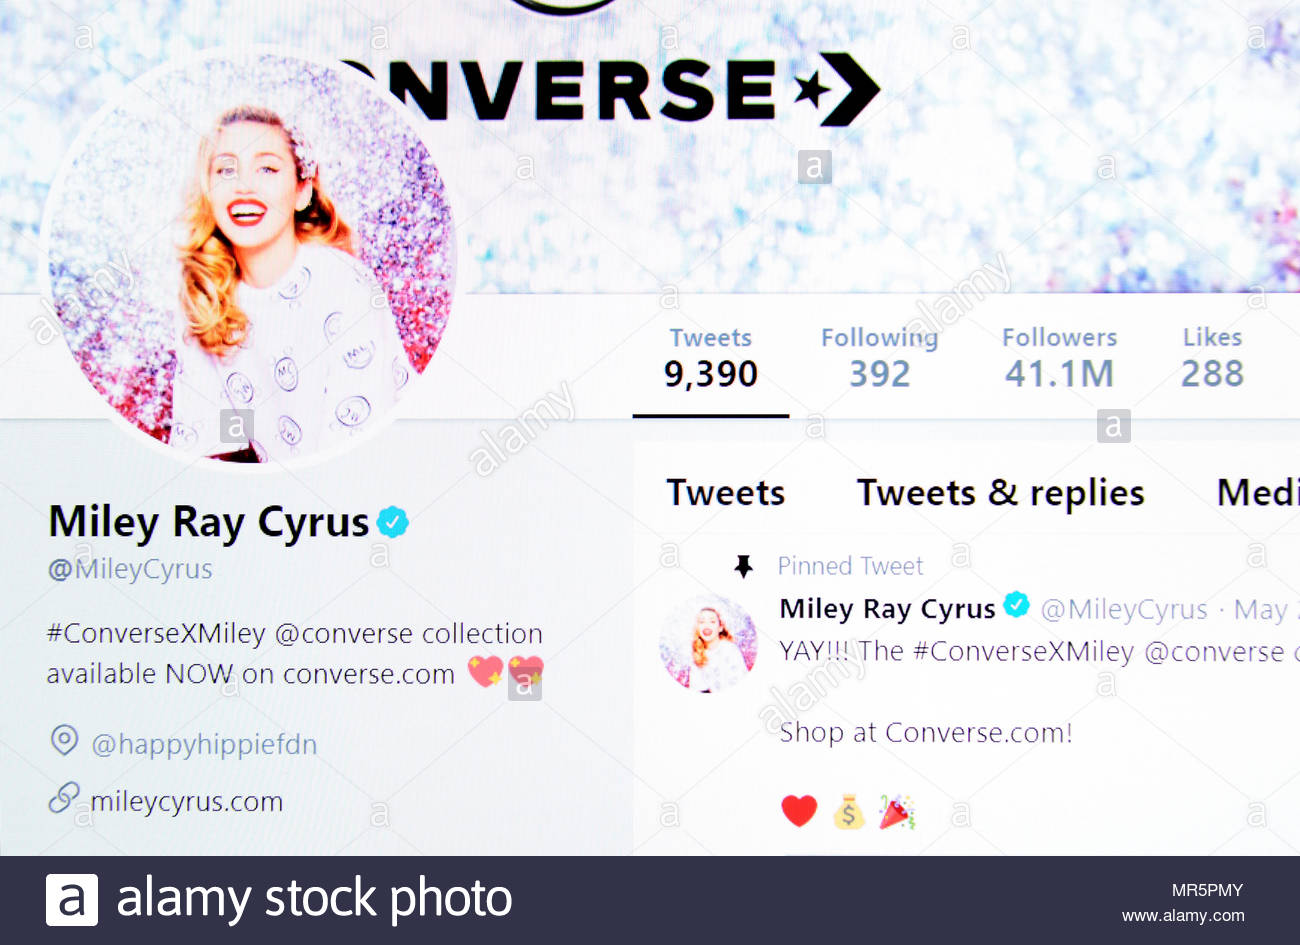 Miley Ray Cyrus Twitter page (2018) - Stock Image